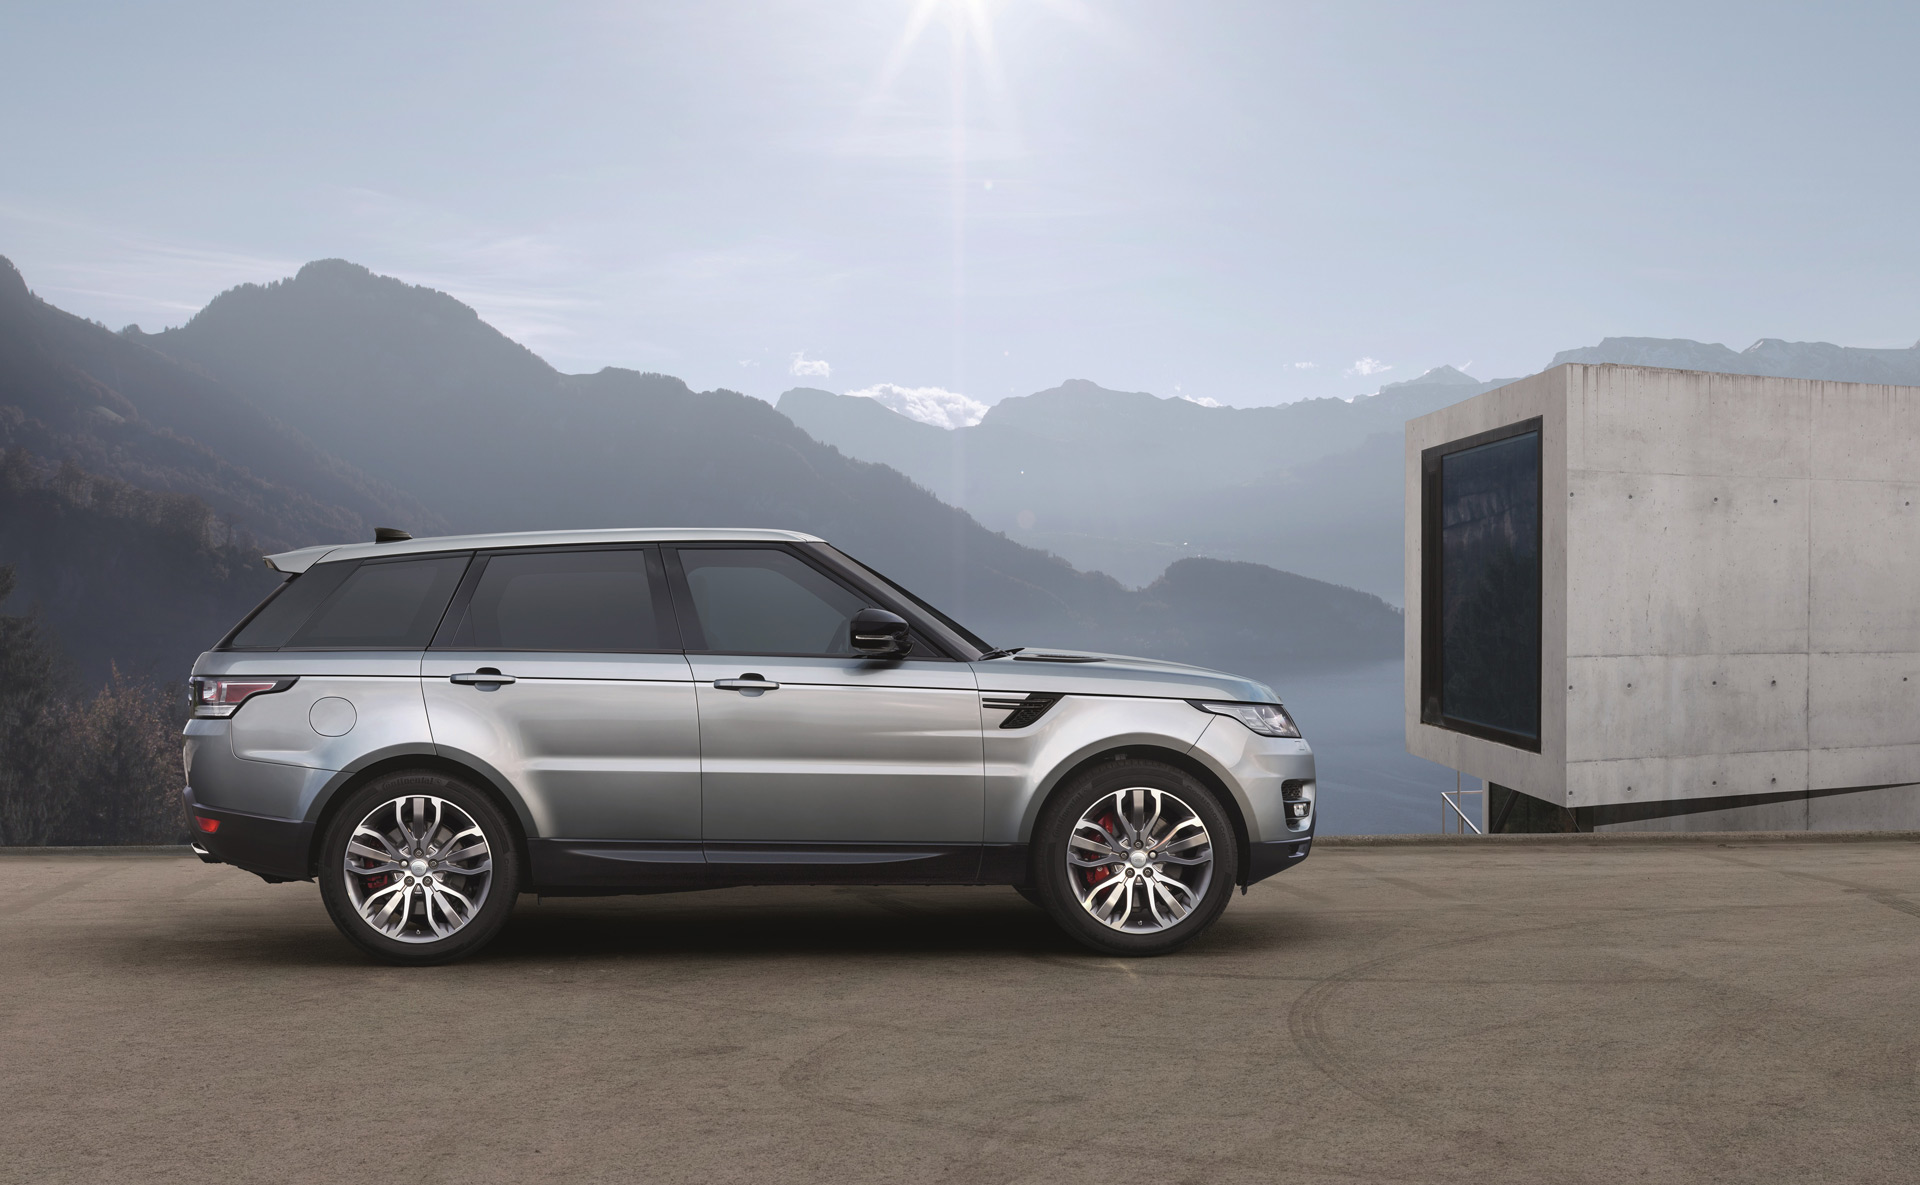 2017 land rover range rover sport quality review   the car